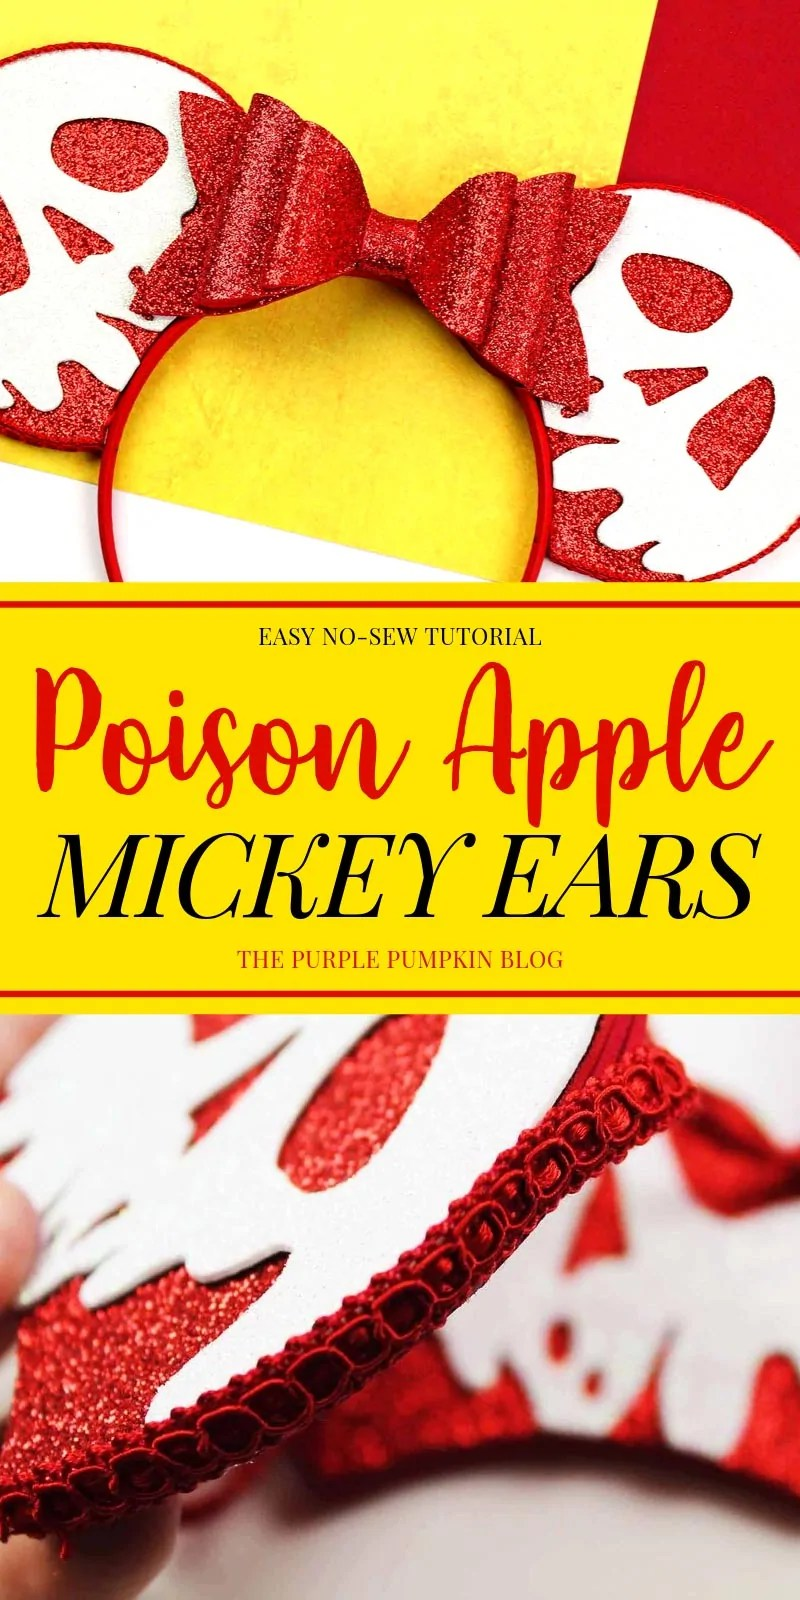 Easy No sew Tutorial Mickey Ears - Poison Apple